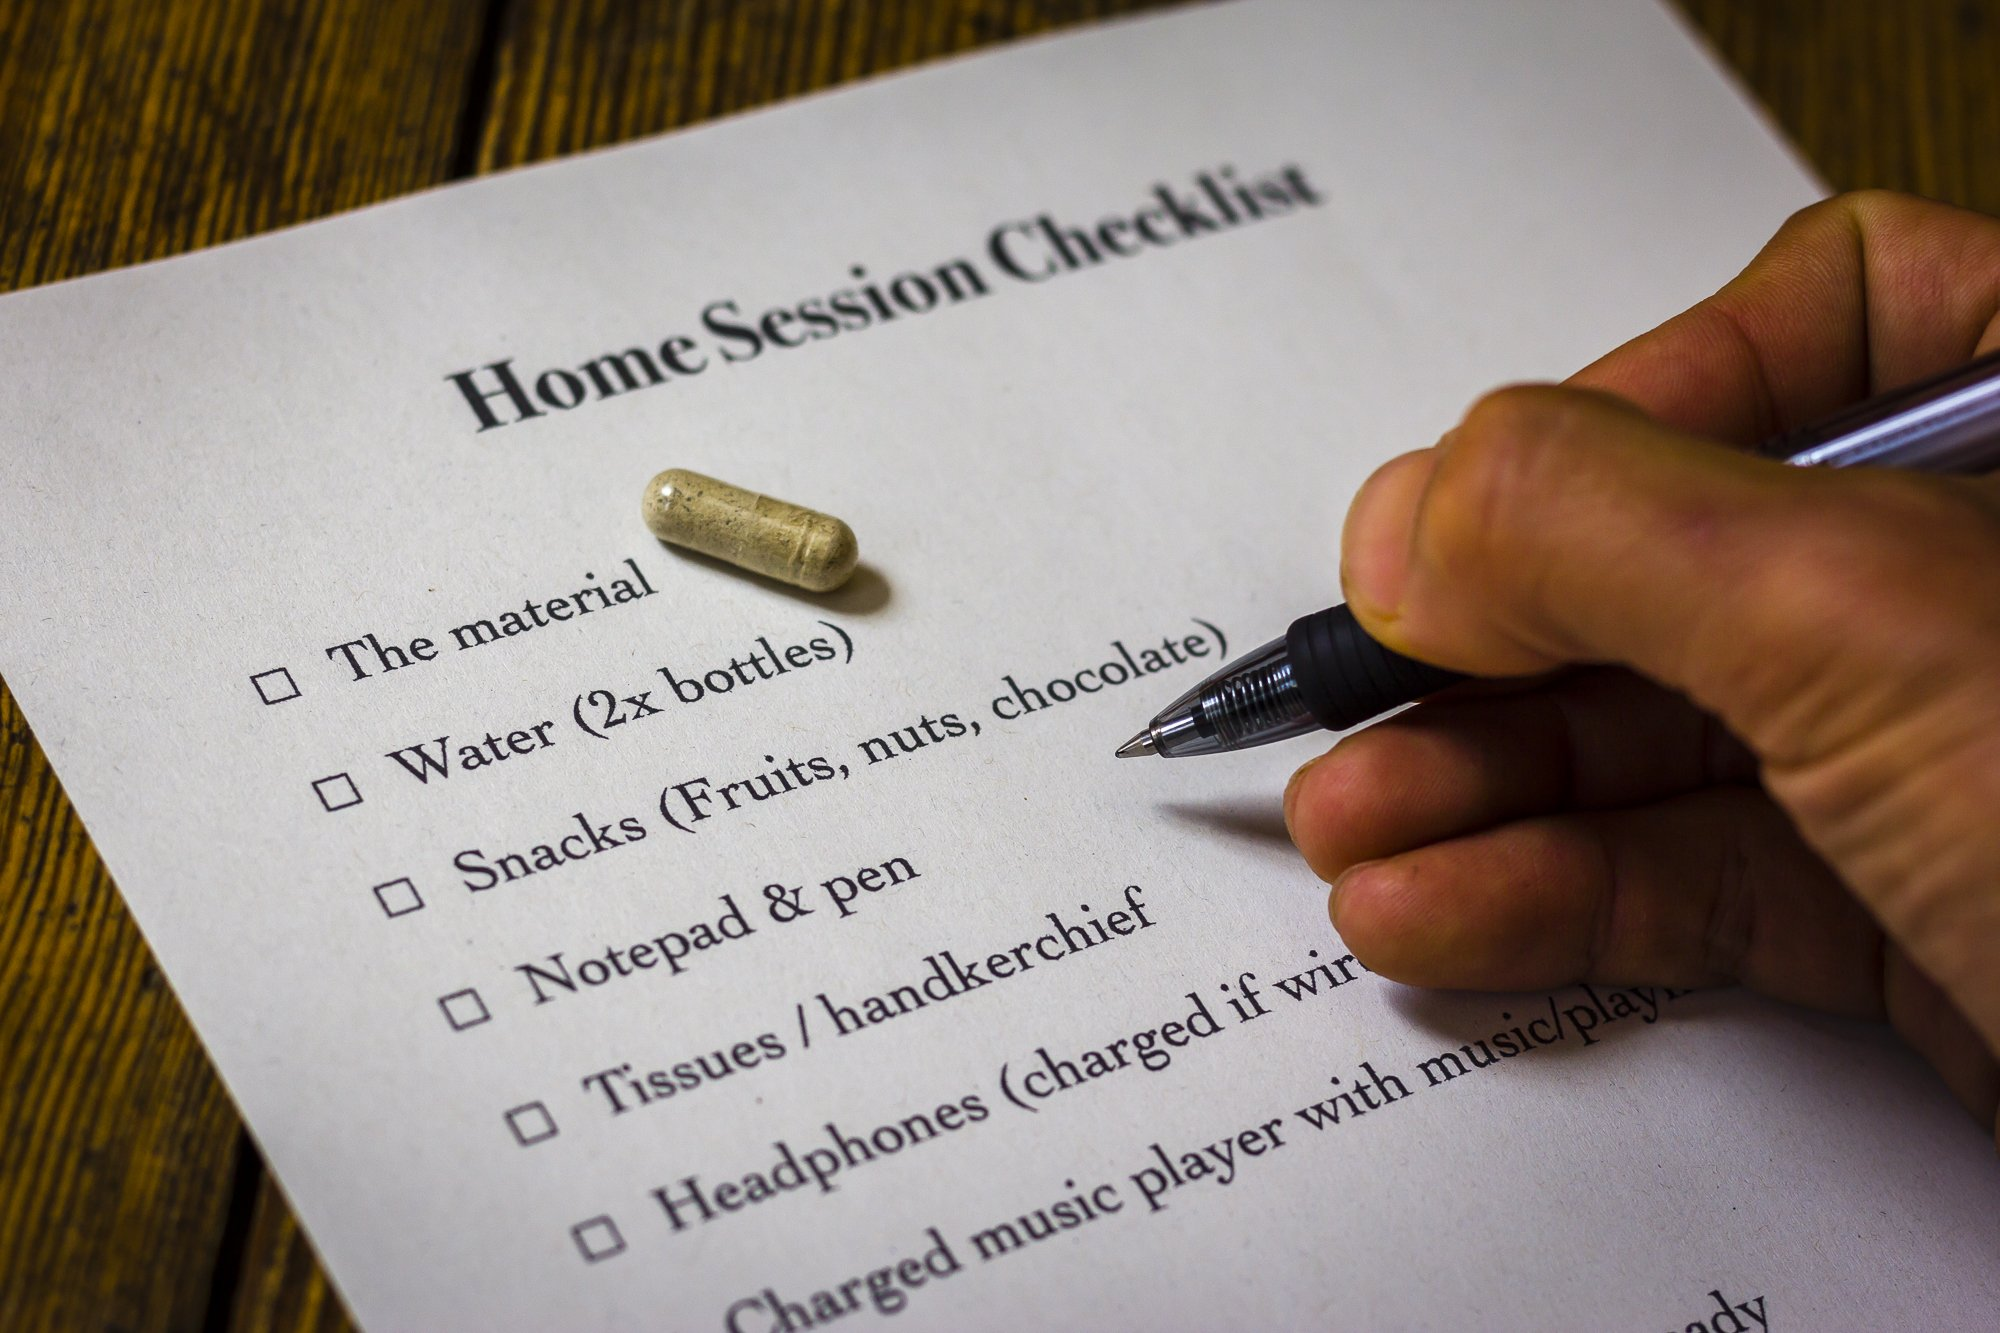 trip home session checklist